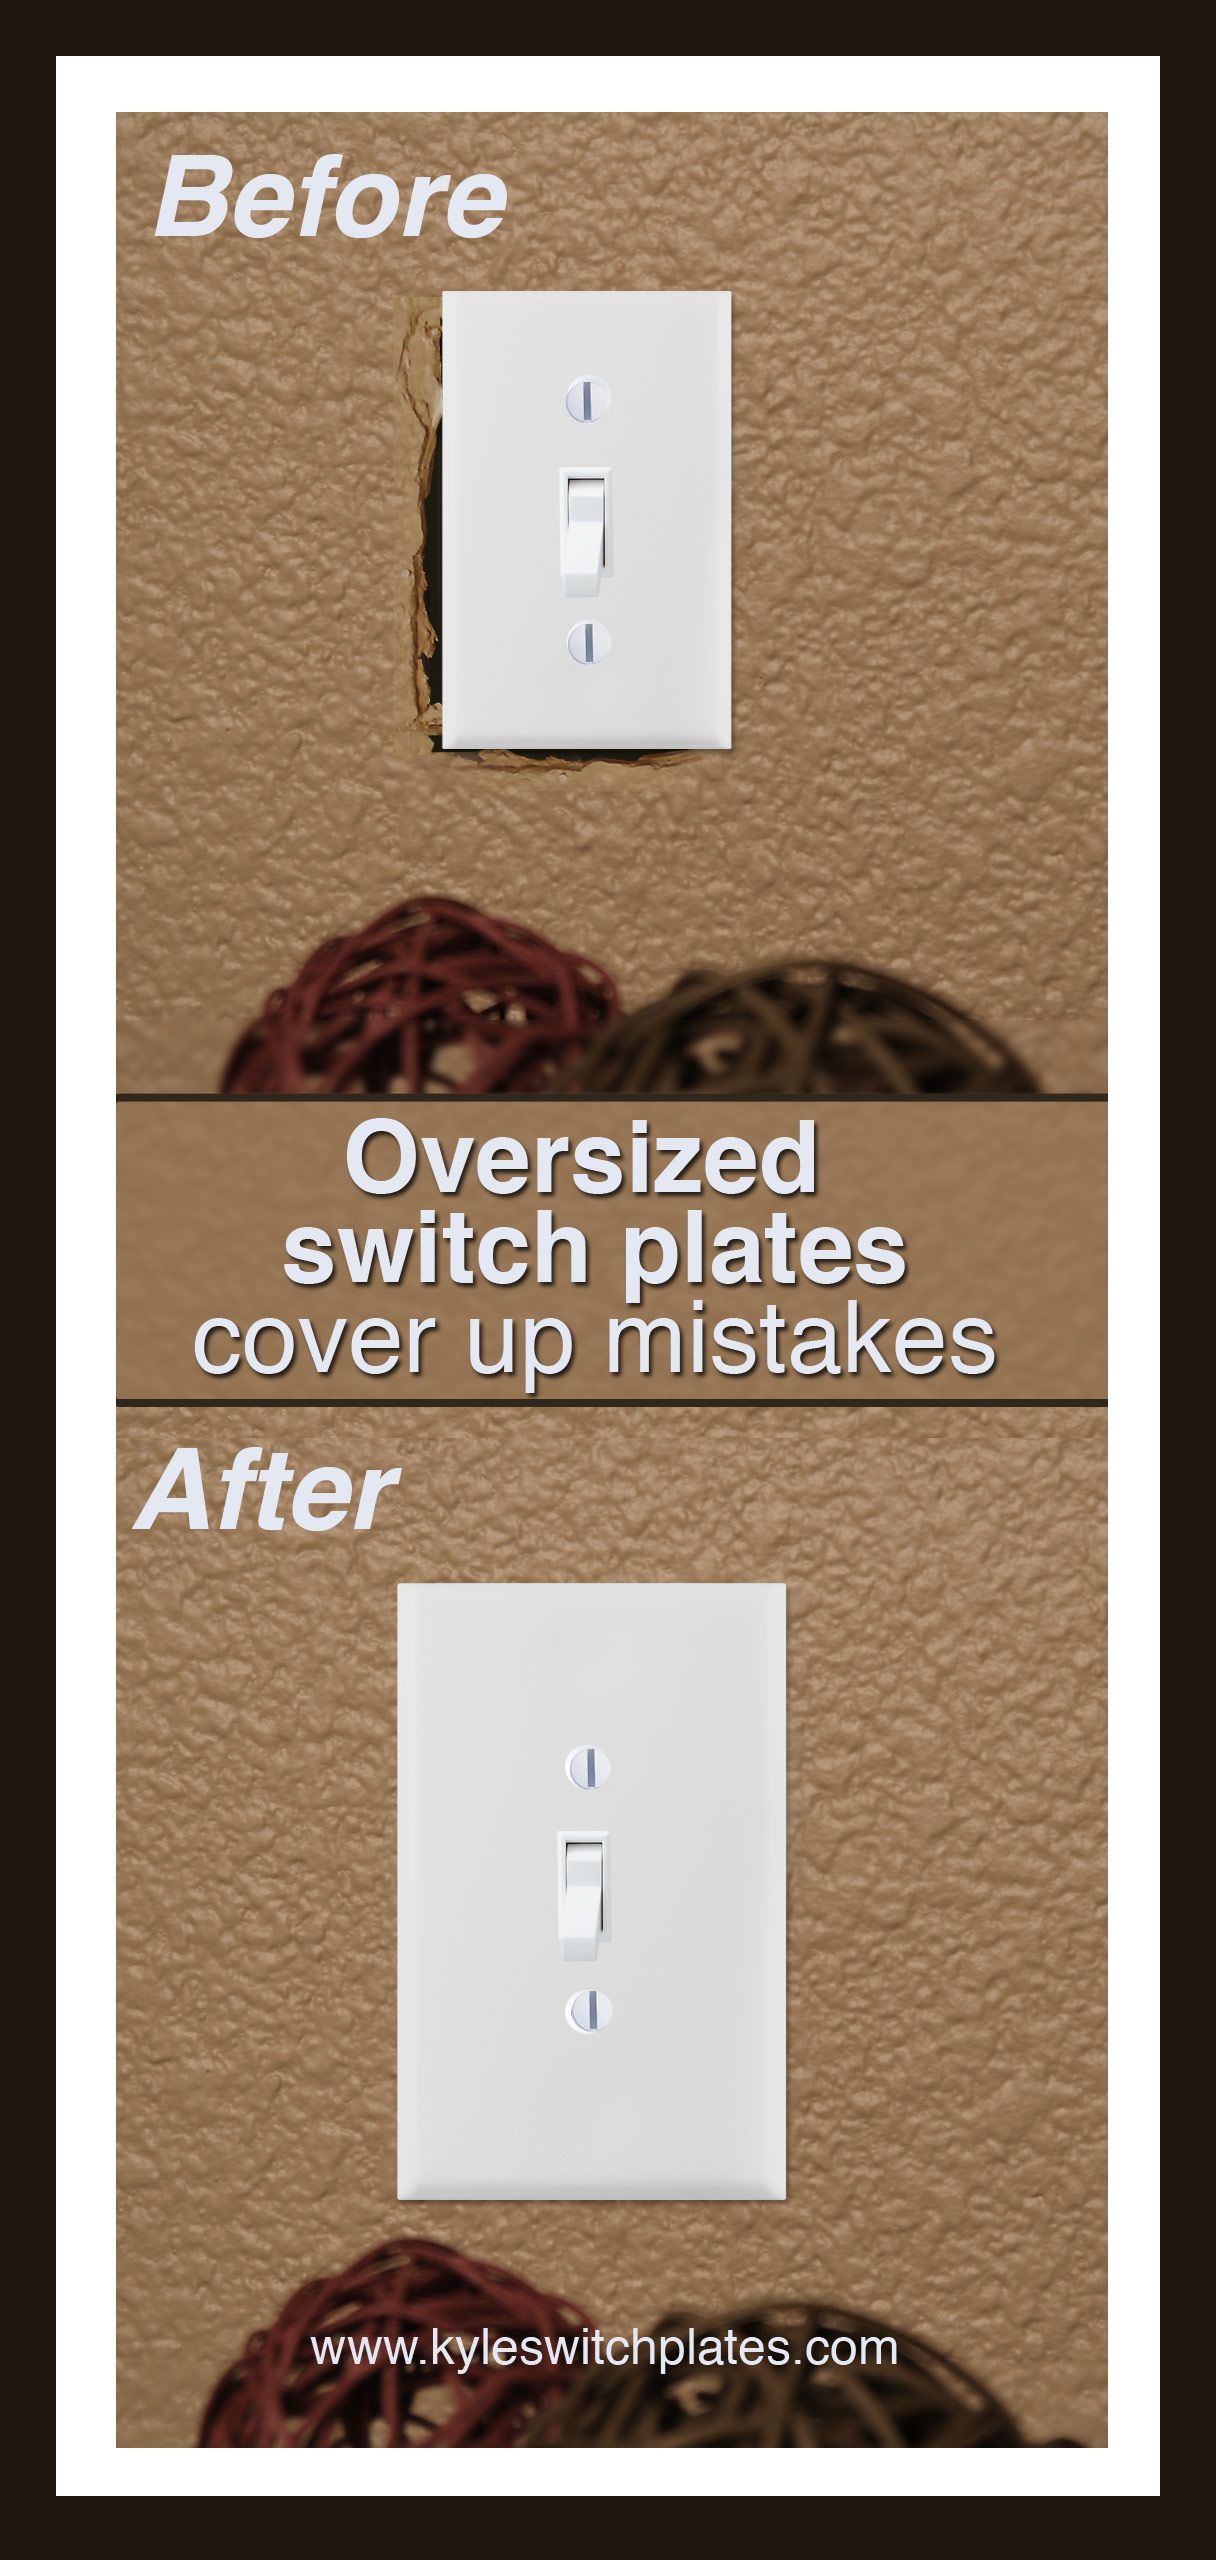 Oversized Light Switch Covers Oversized Light Switch Plates & Outlet Covers  Cover Up Hole In